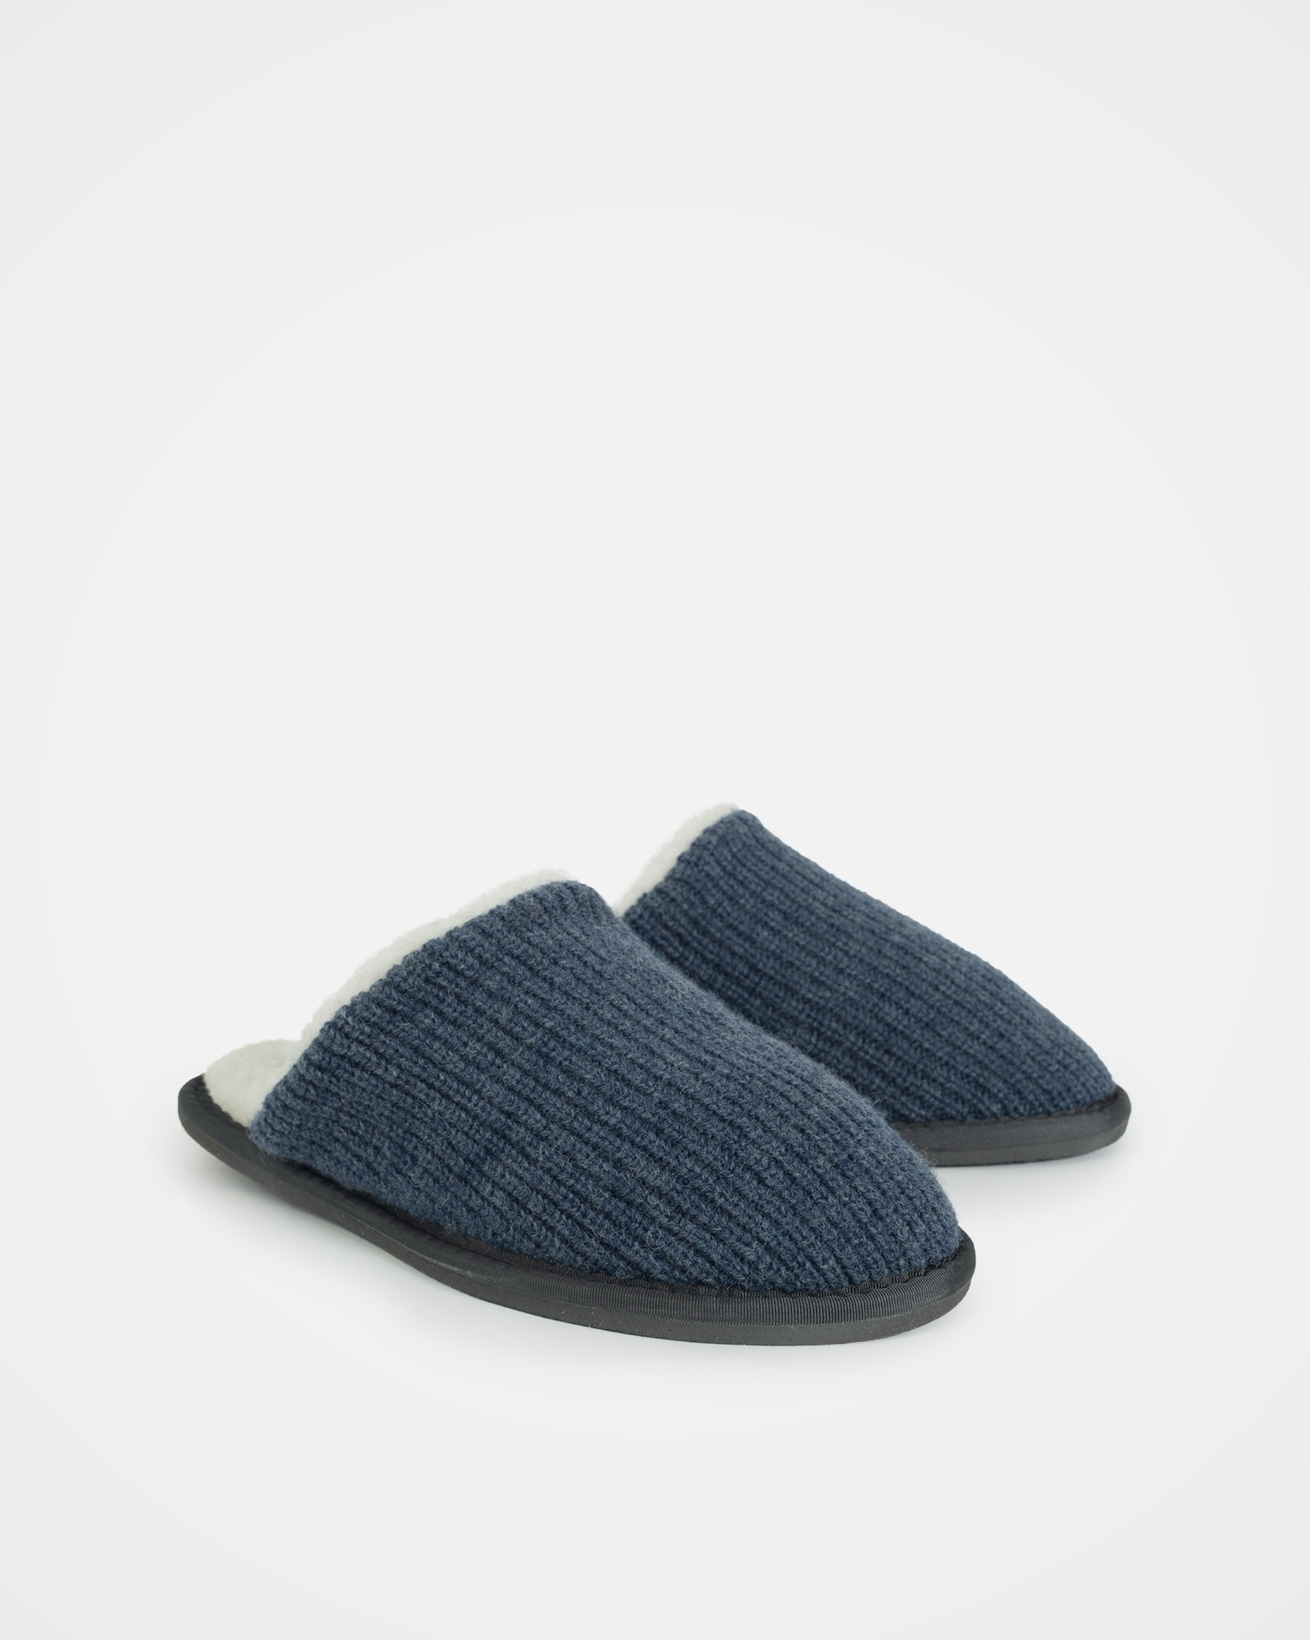 7642_mens-knitted-mule_denim_pair.jpg